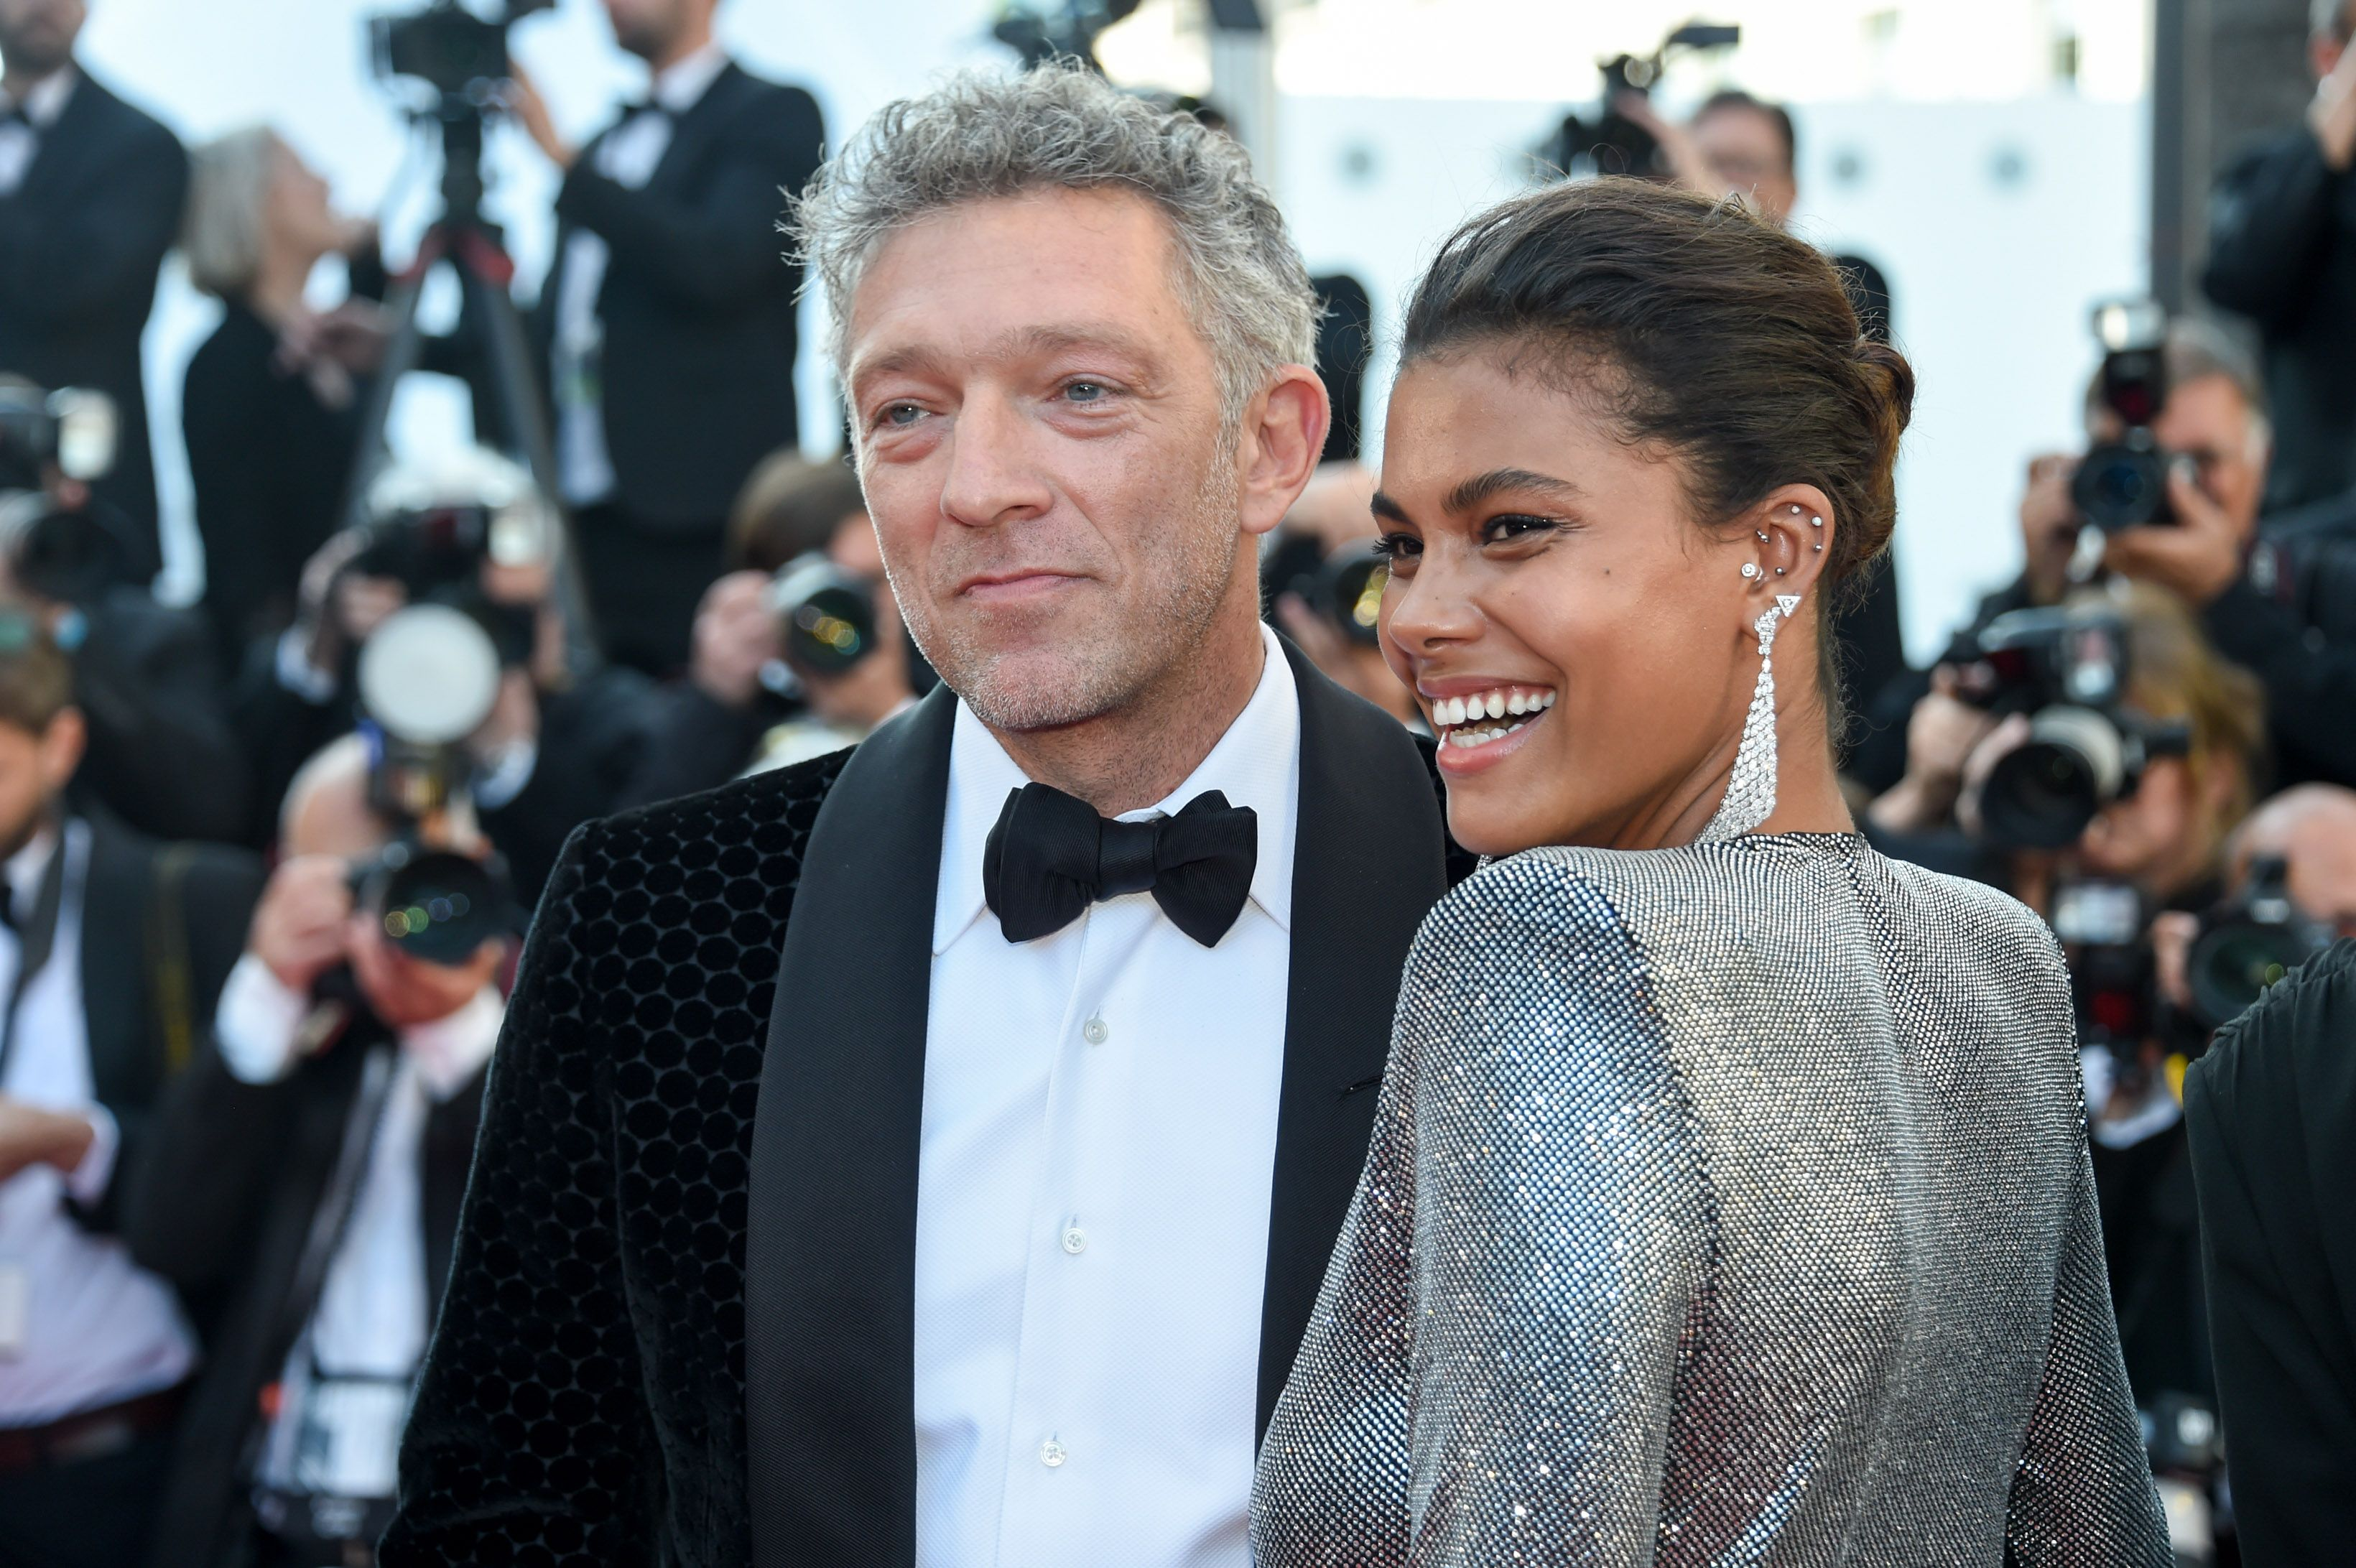 """Vincent Cassel and Tina Kunakey at the screening of """"Girls of The Sun"""" (Les Filles Du Soleil) during the 71st annual Cannes Film Festival at Palais des Festivals on May 12, 2018 